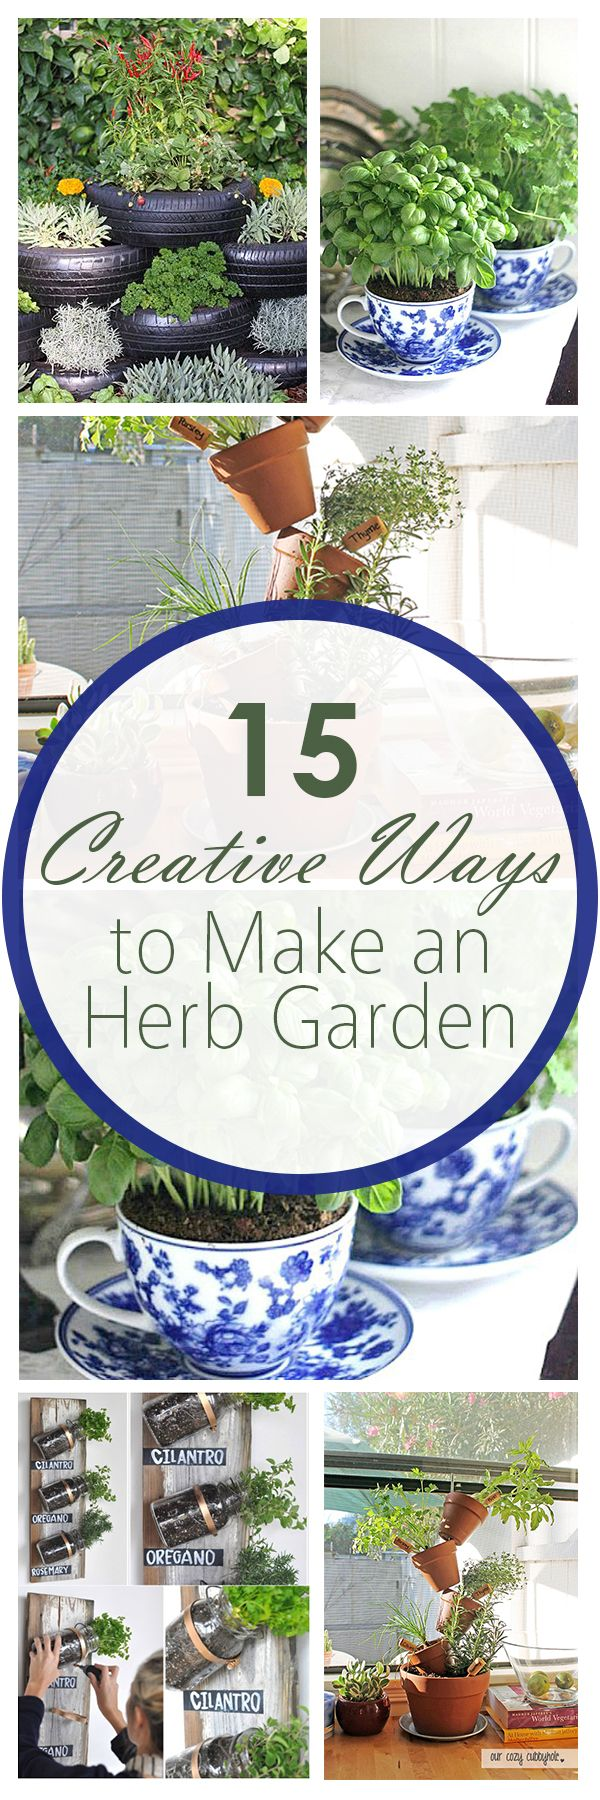 15 Creative Ways to Make an Herb Garden